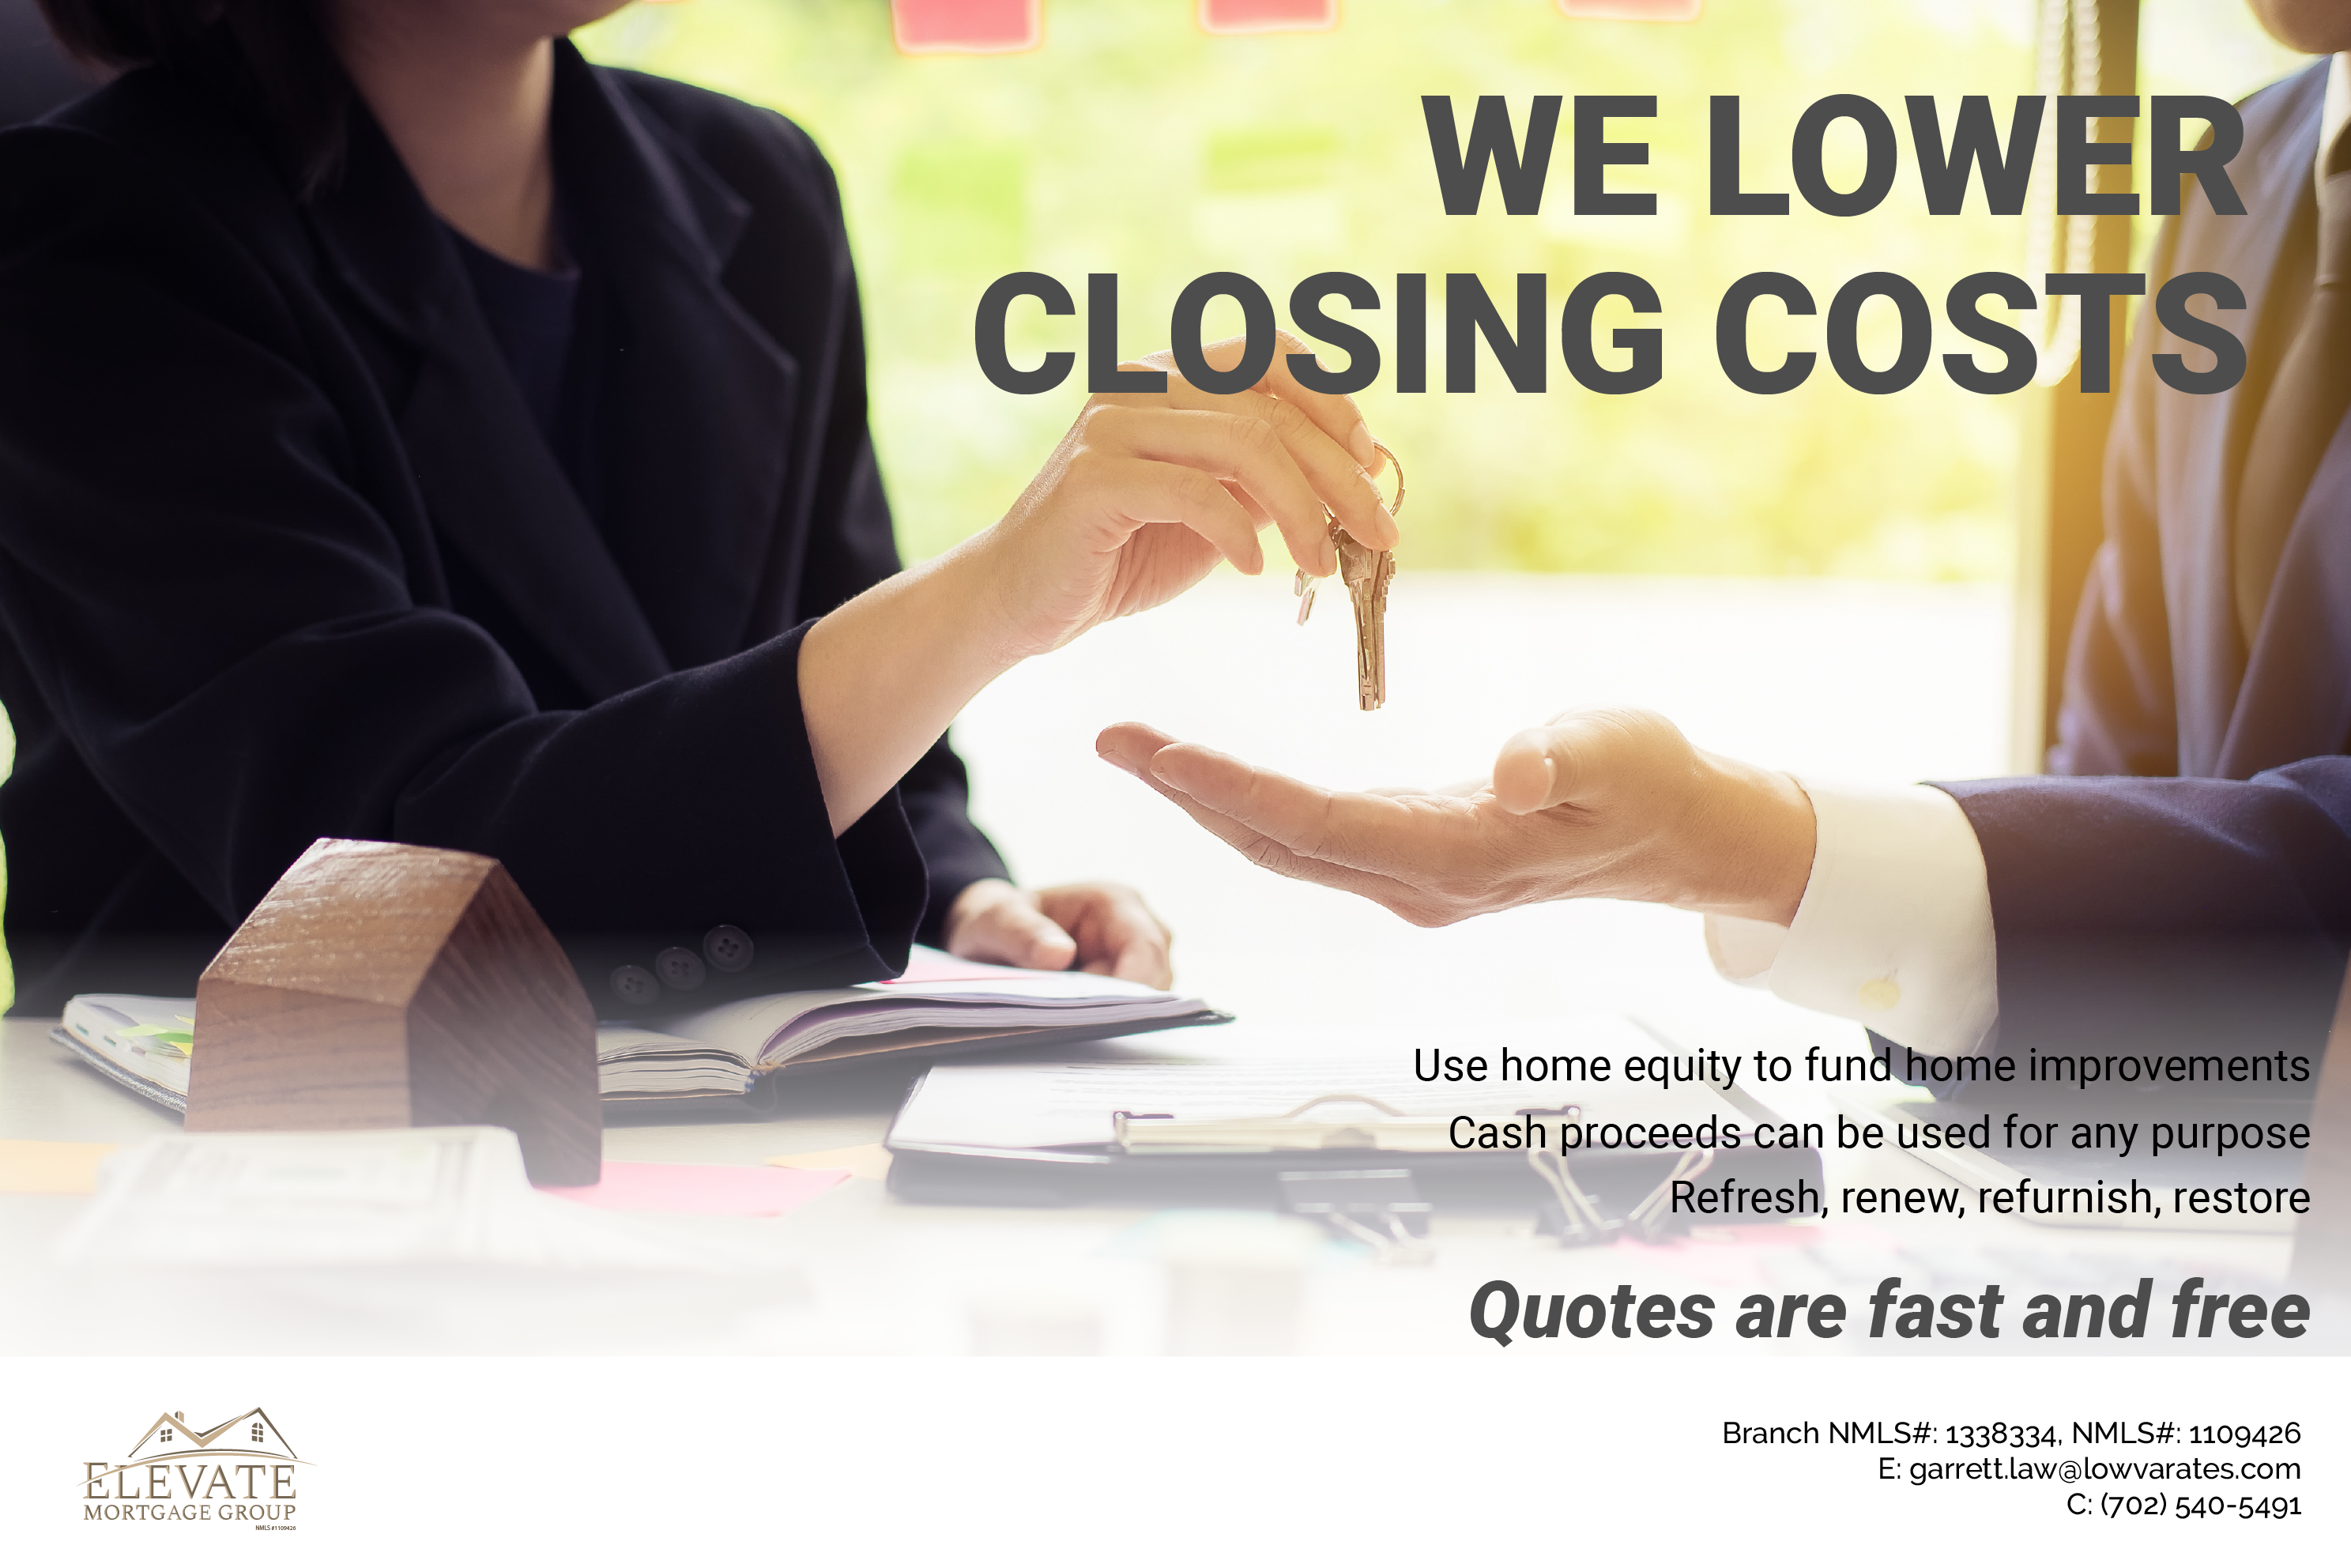 we_lower_closing_costs_marketing-01.png (4.53 MB)